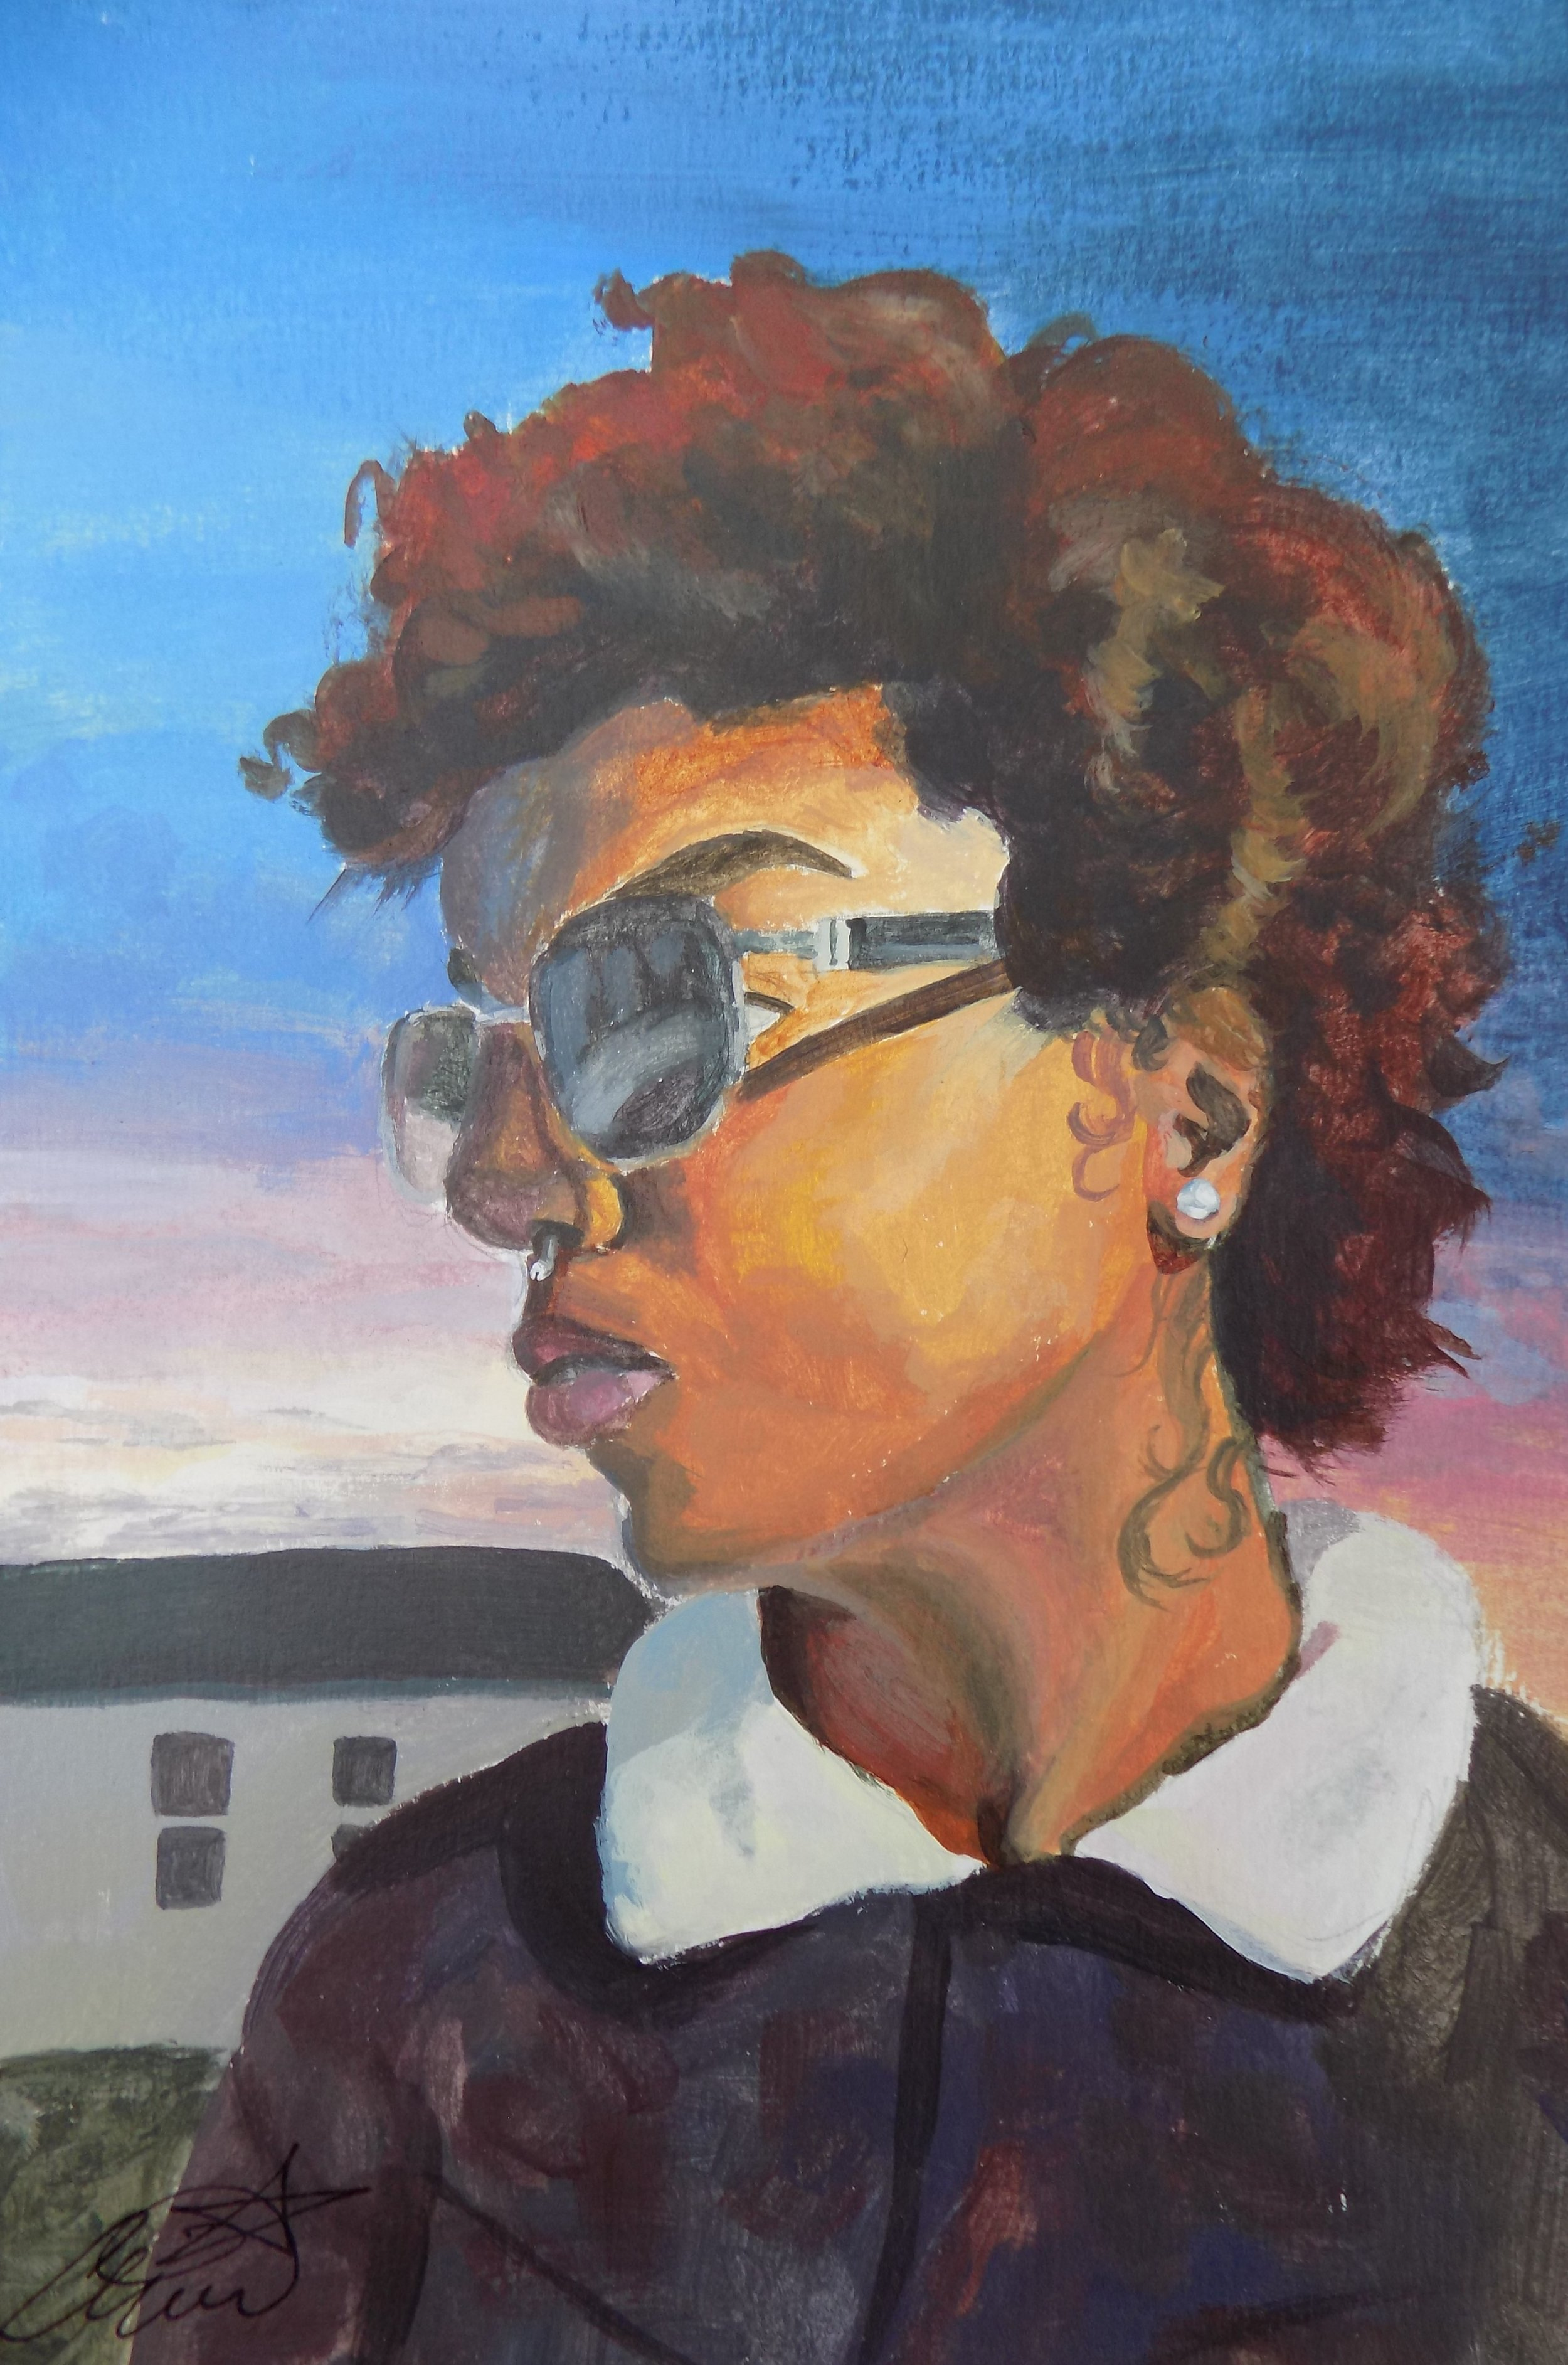 A young Richmond artist with much to bring to the creative table, Amina's artwork is full of expression. Her concepts are of a new age of Romanticism and Impressionism.